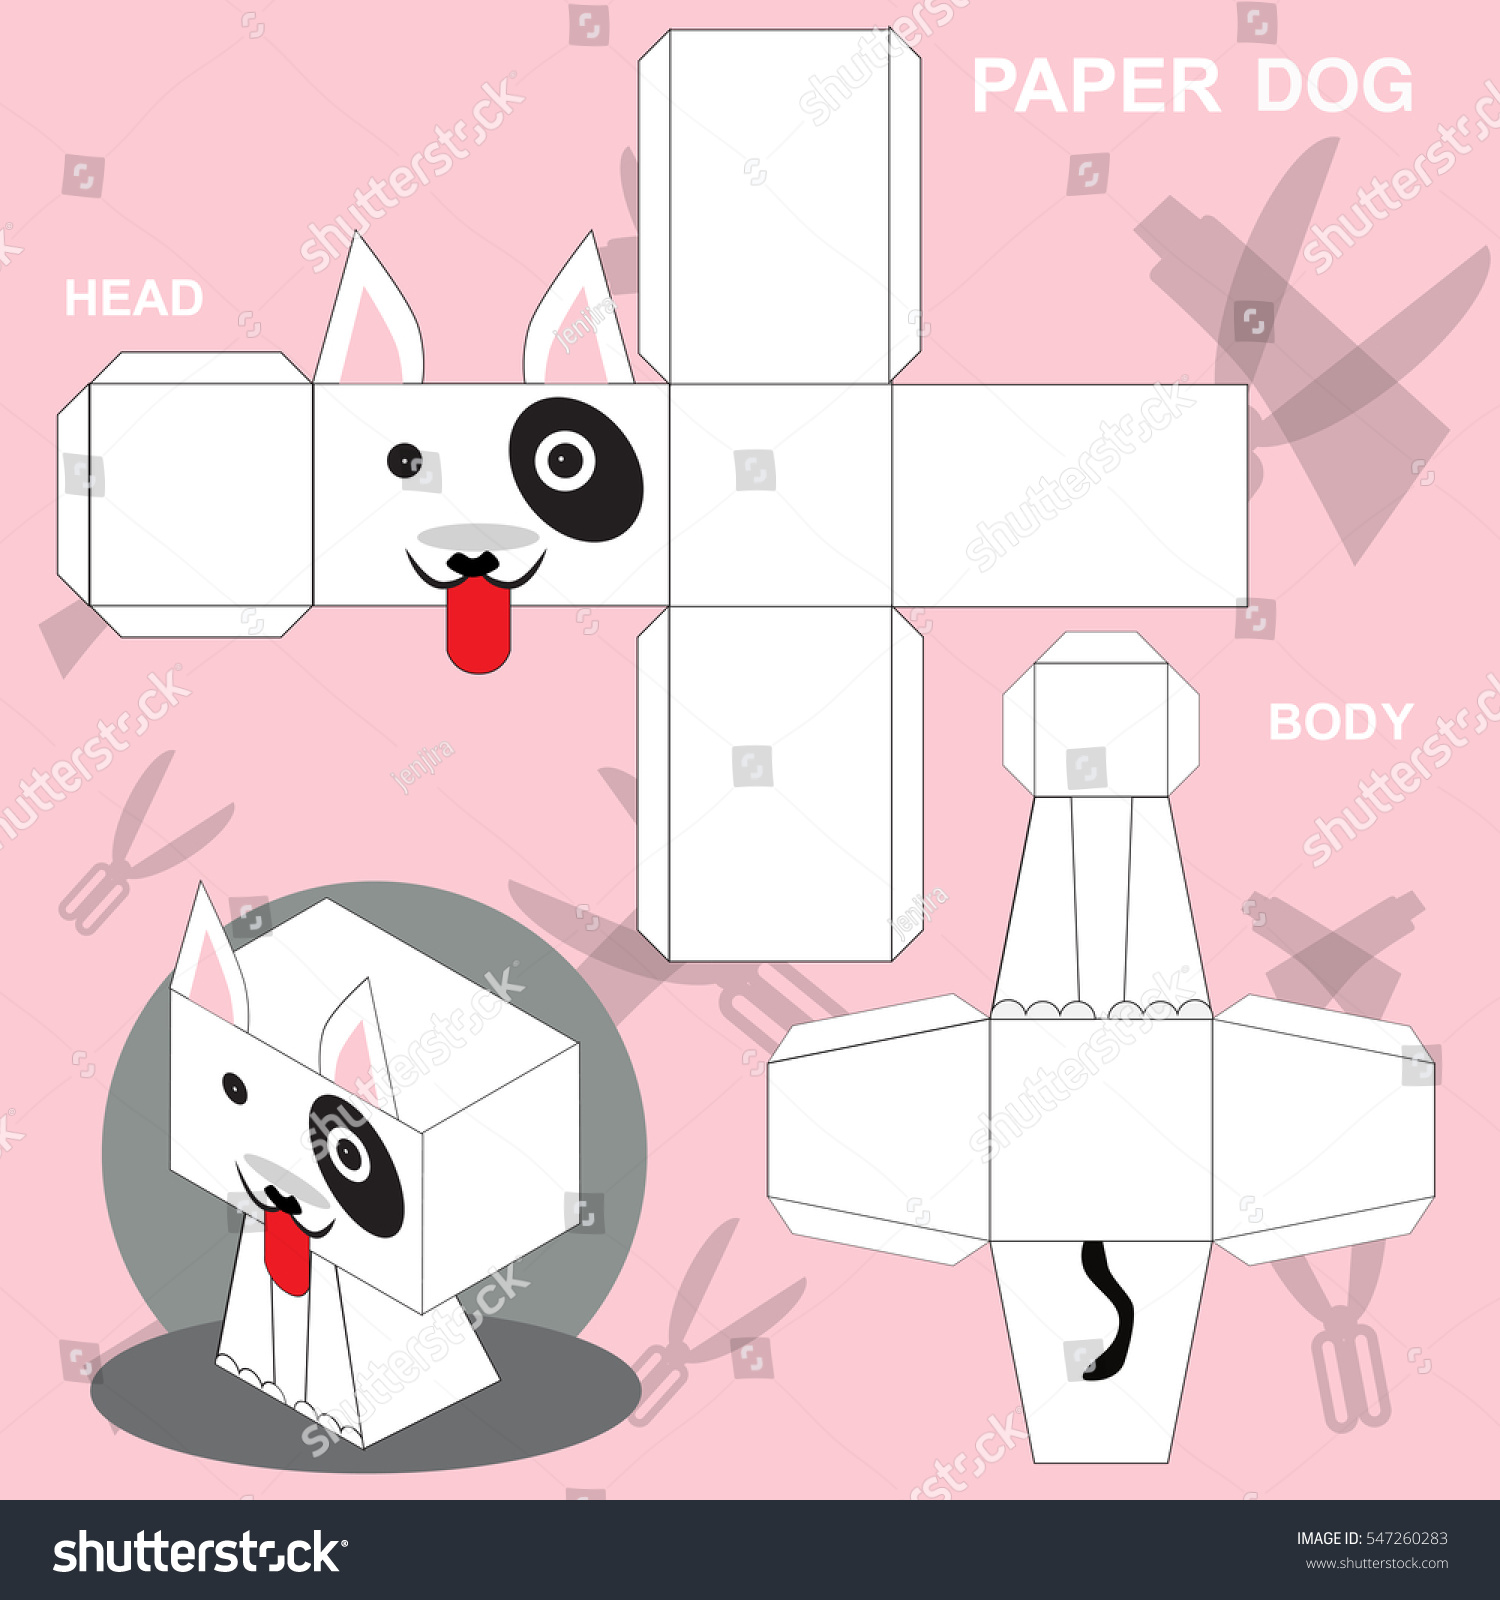 Dog Paper Craft Template Stock Vector Royalty Free 547260283